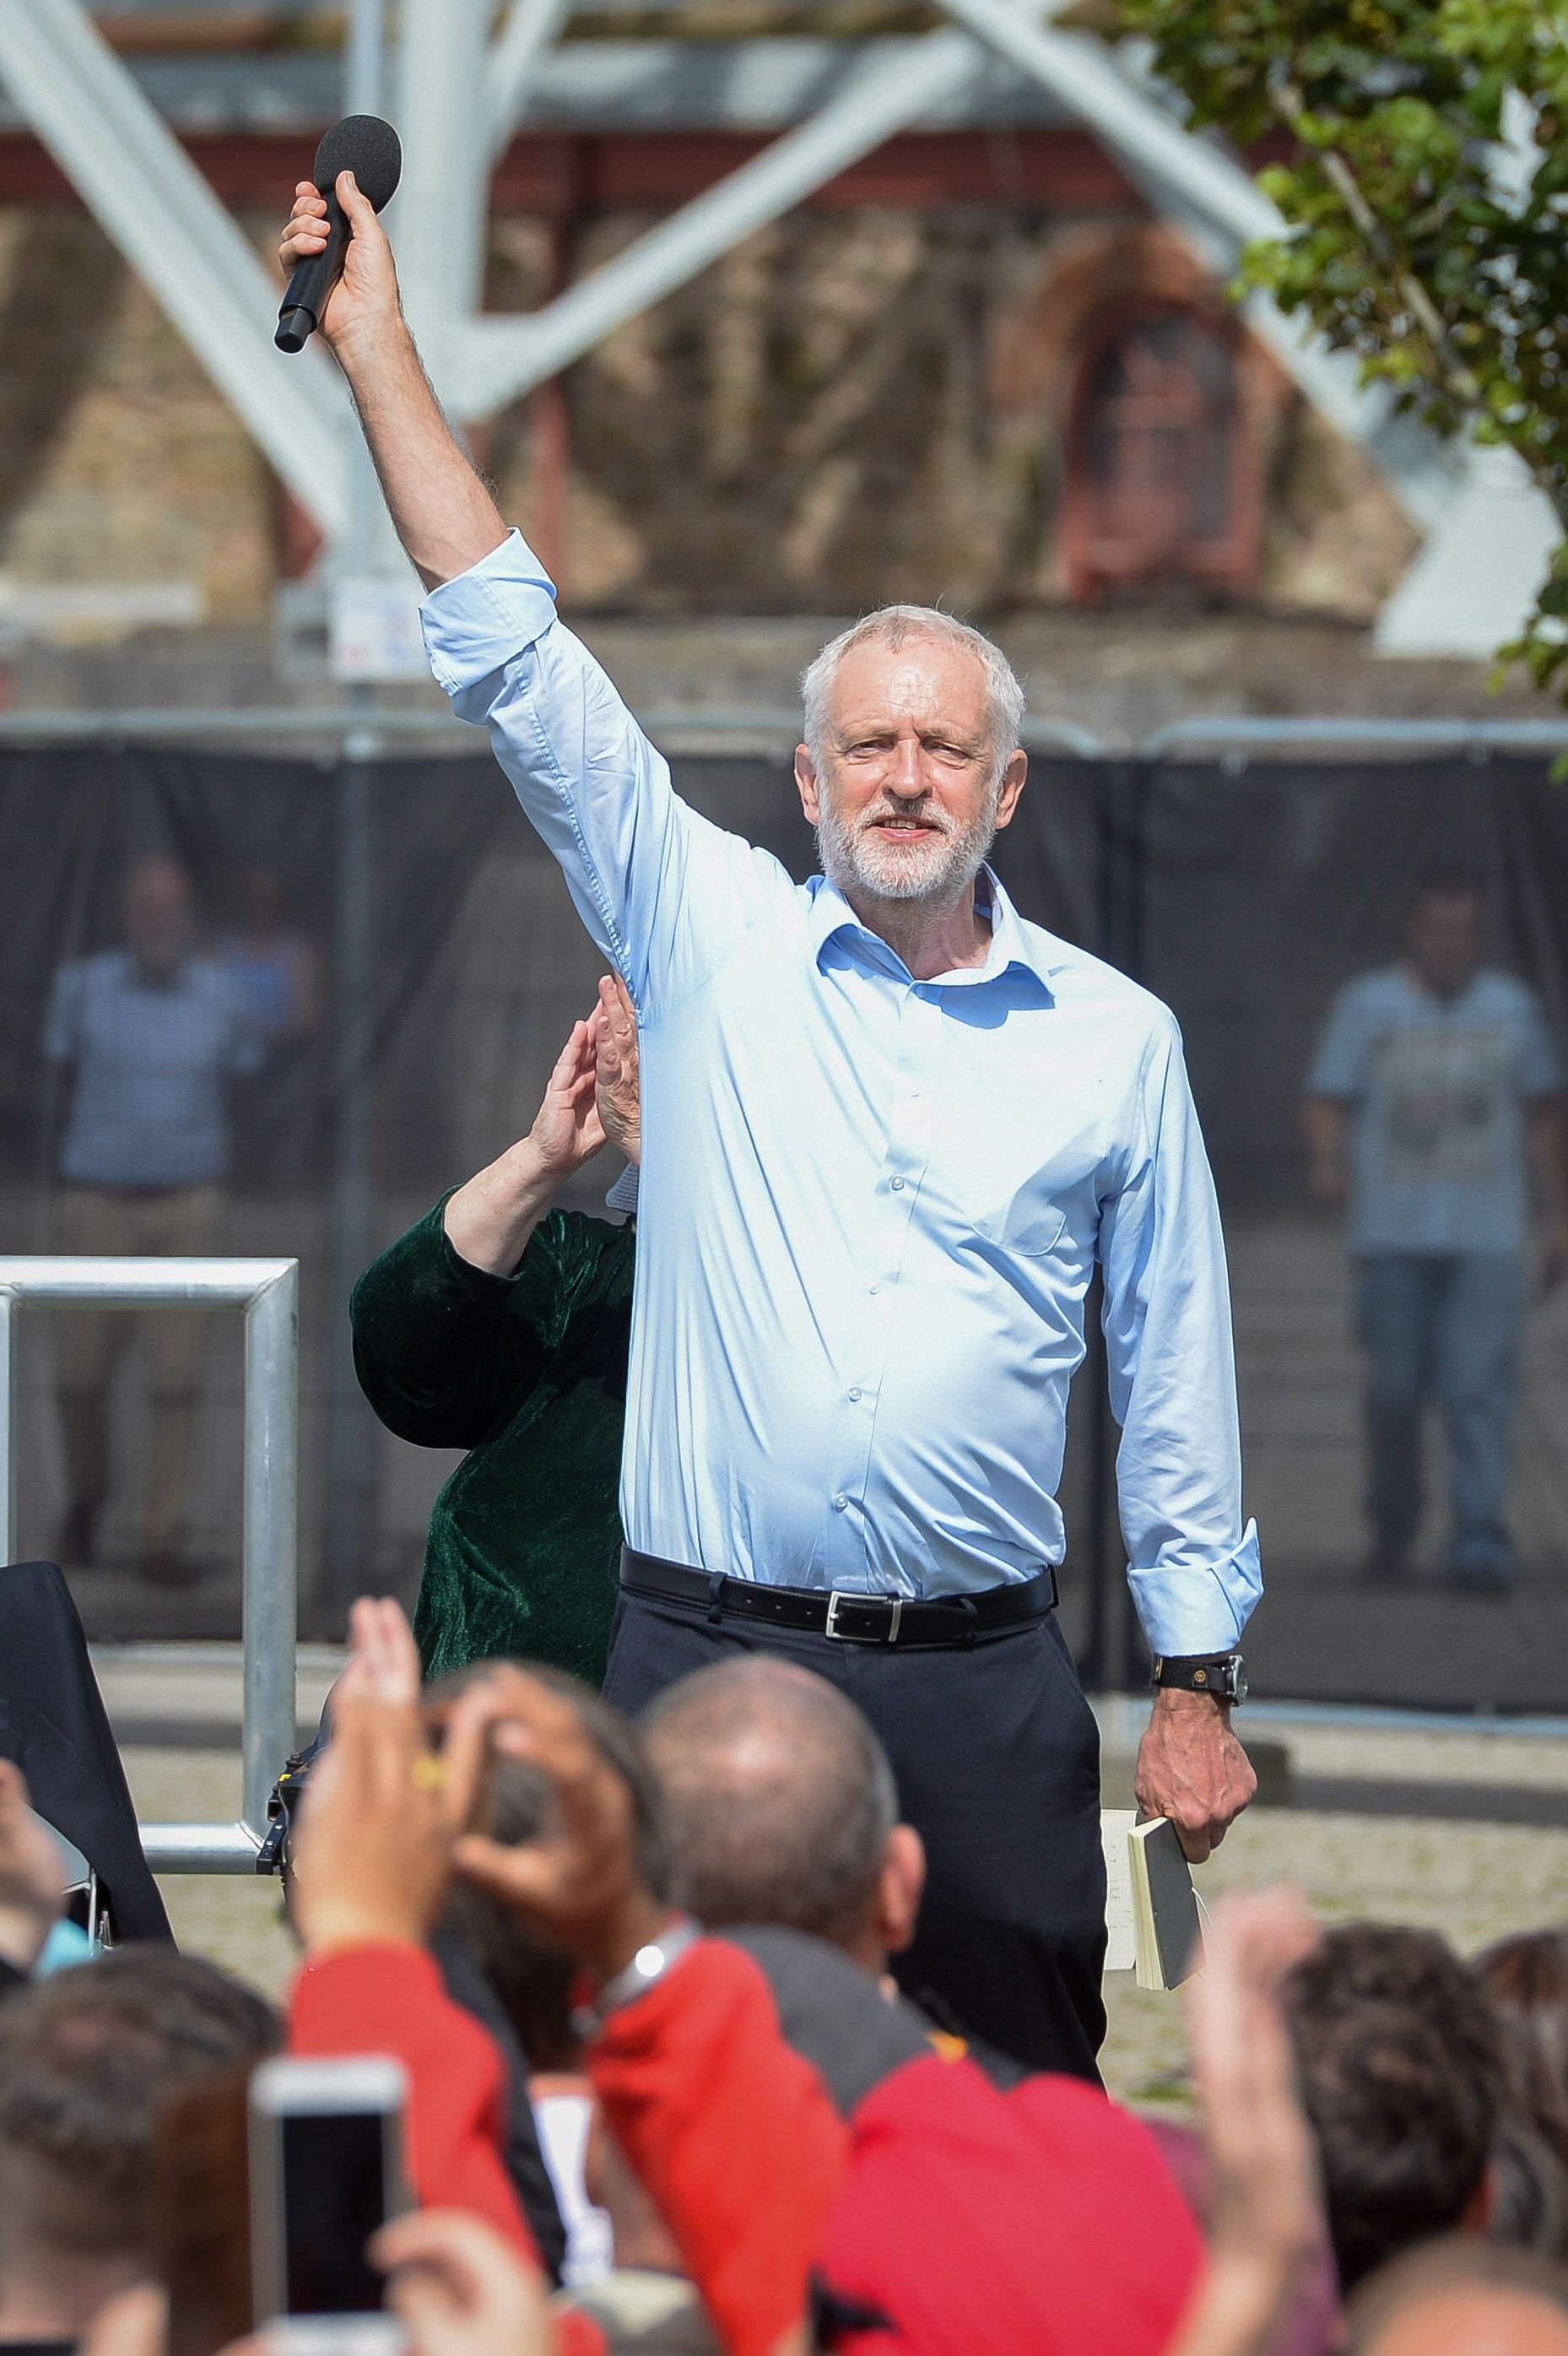 Labour leader Jeremy Corbyn has not left the campaign